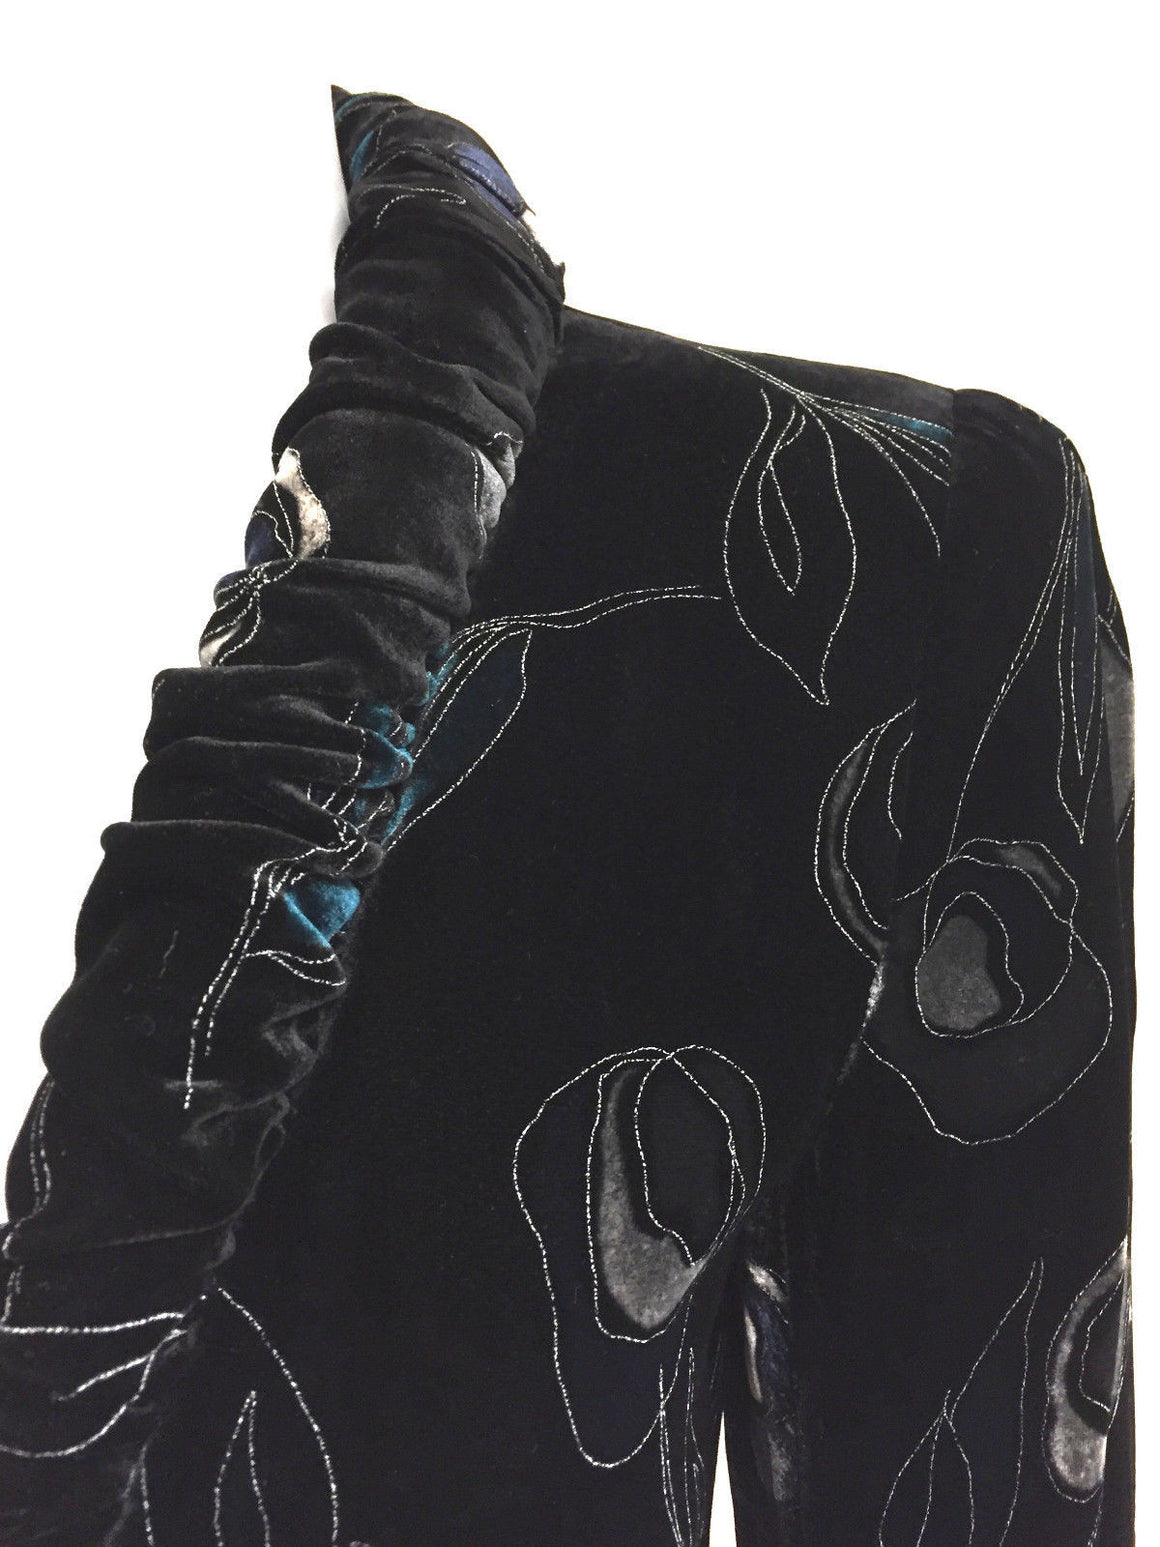 bisbiz.com GIORGIO ARMANI   Black Label  Black/Multi-Color Floral-Patterned Stenciled Velvet Jacket  Size: IT44 / 8 - Bis Luxury Resale